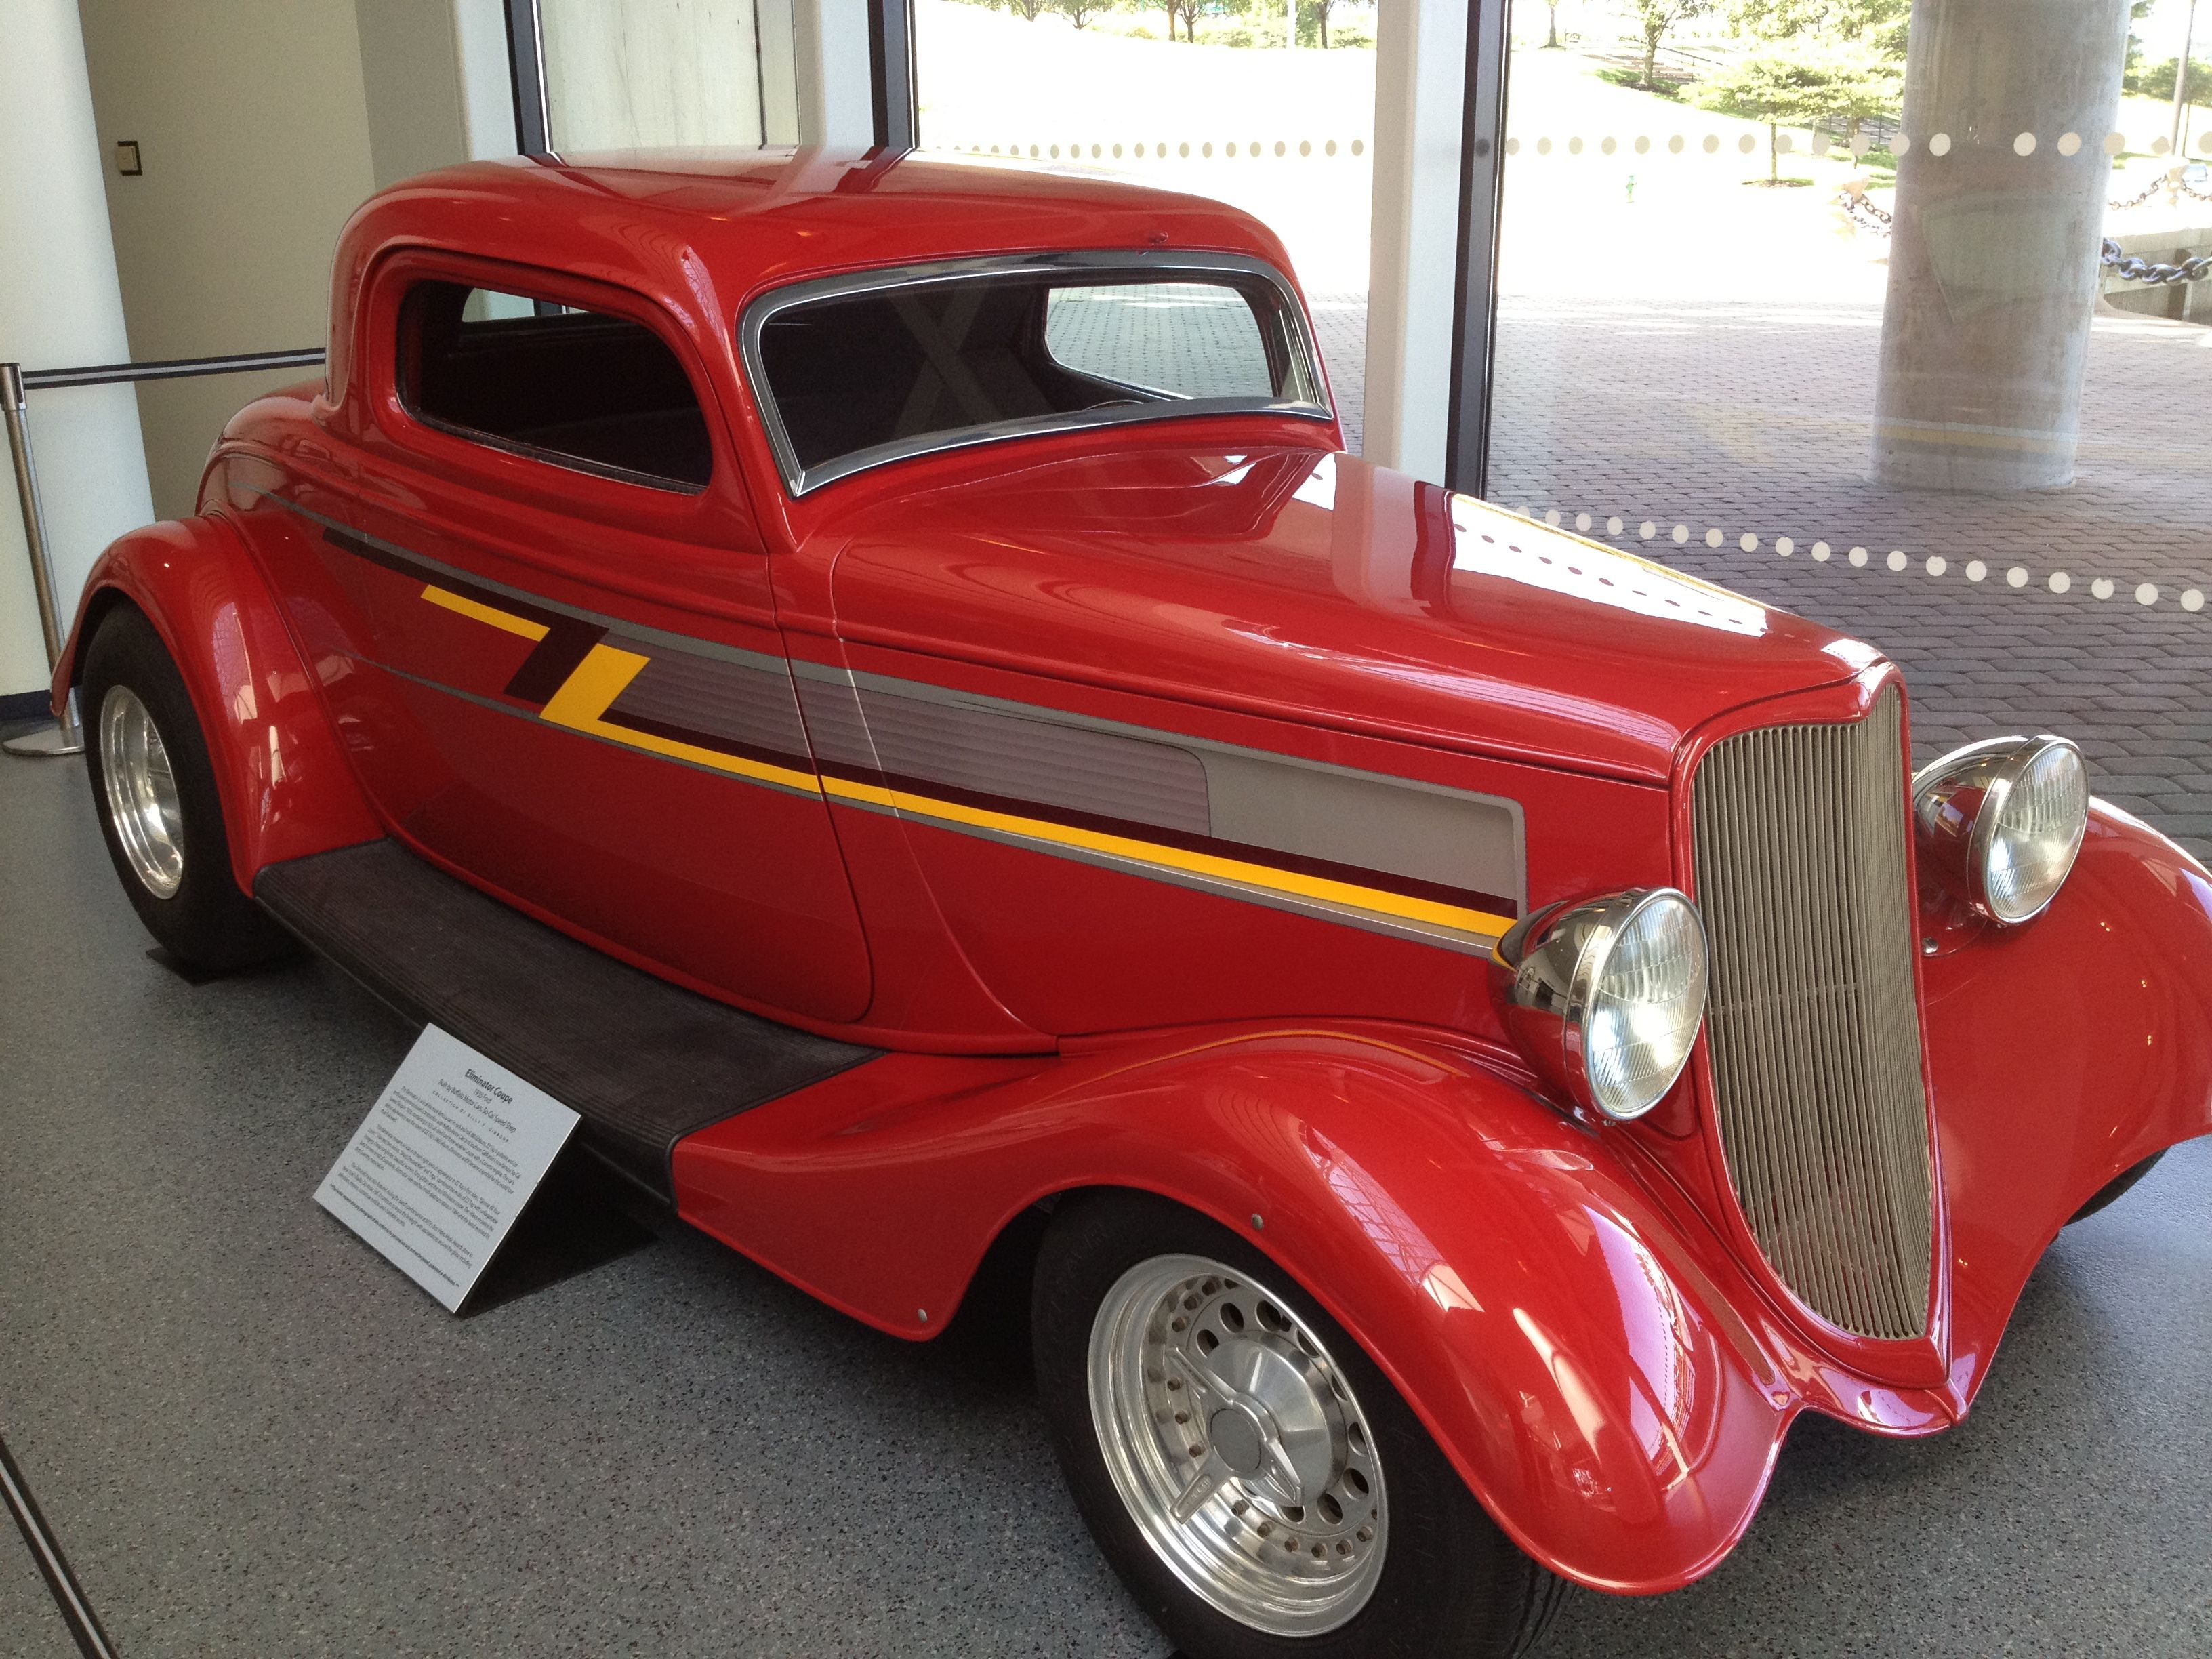 Zz Top S Famed Eliminator Car At Rock N Roll Hall Of Fame In